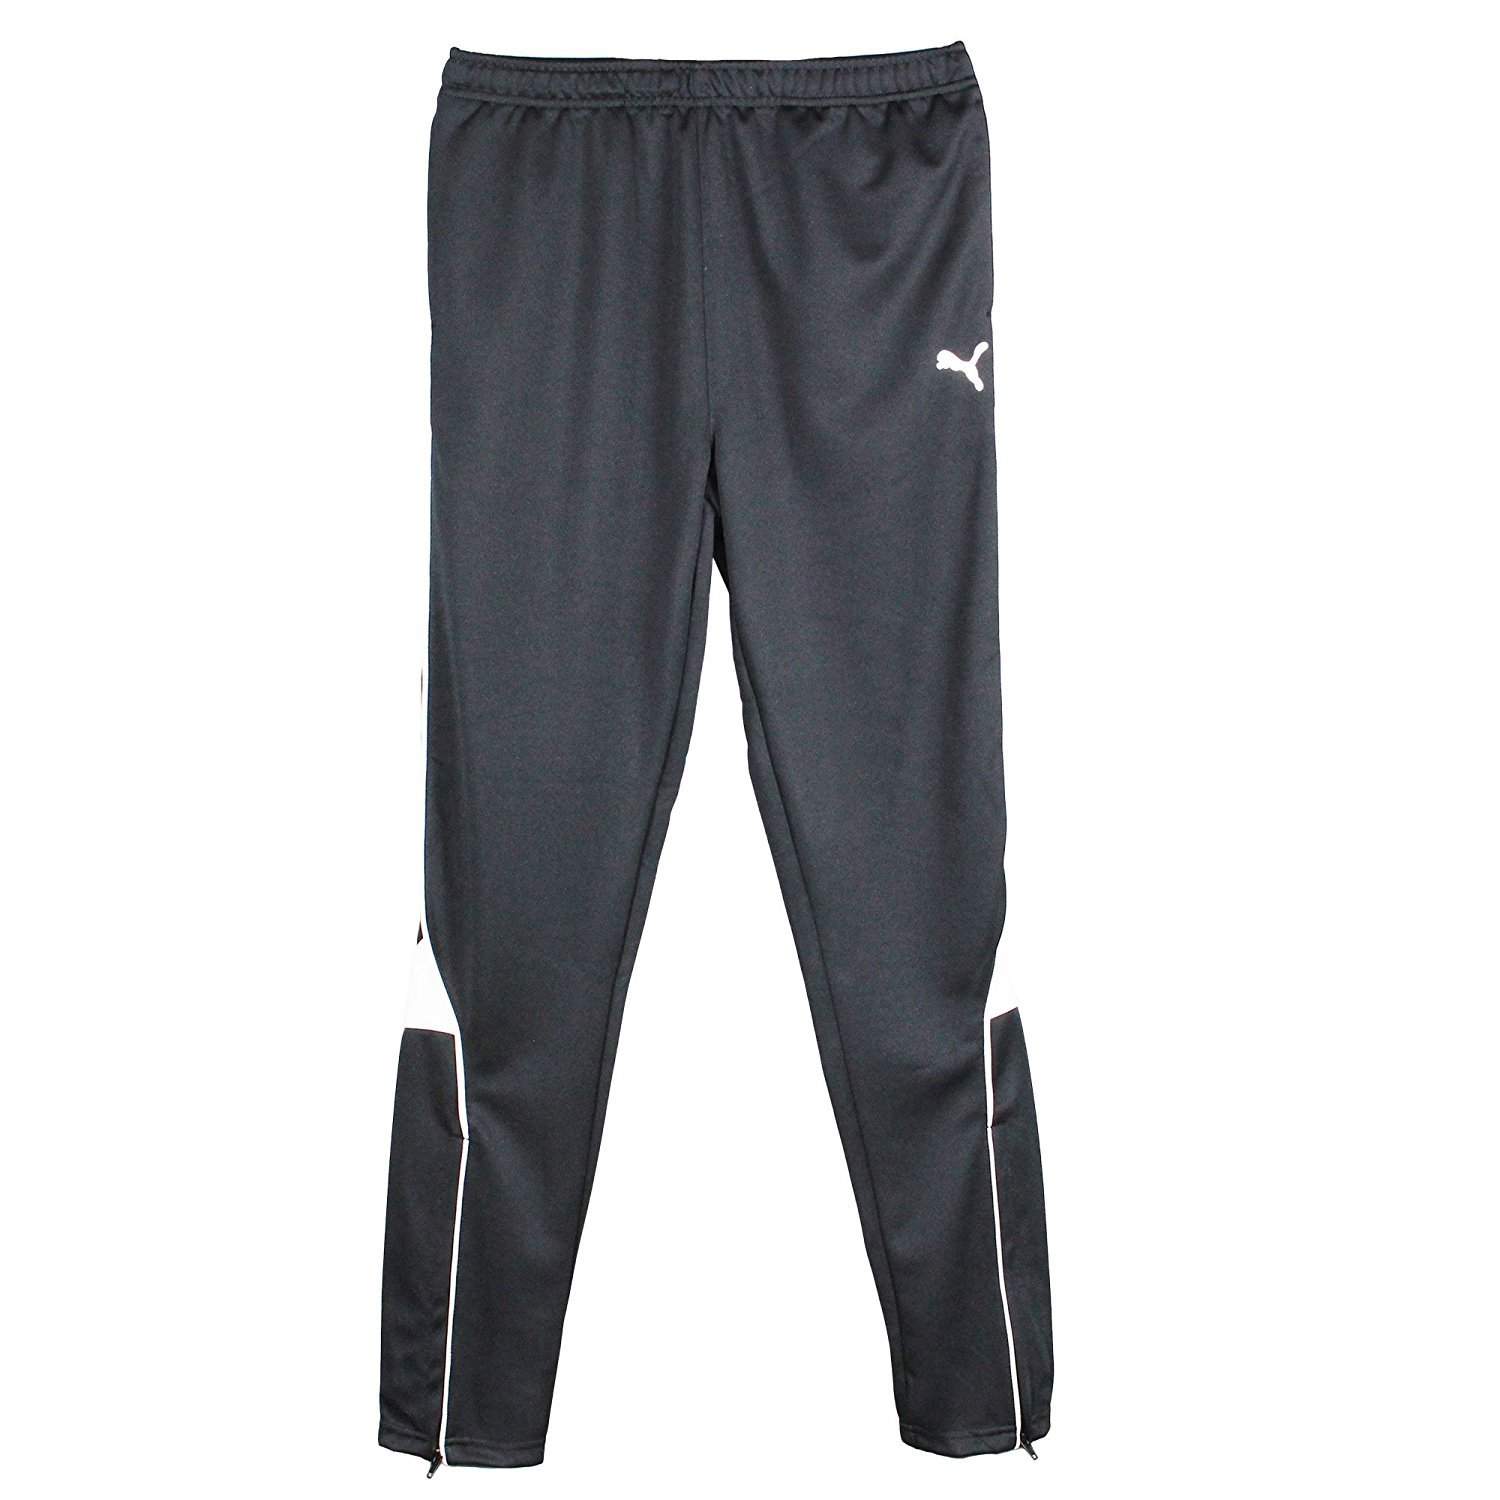 PUMA Big-Boys Athletic Soccer Warm up Wind Pants Black - Pure Core Soccer Pants